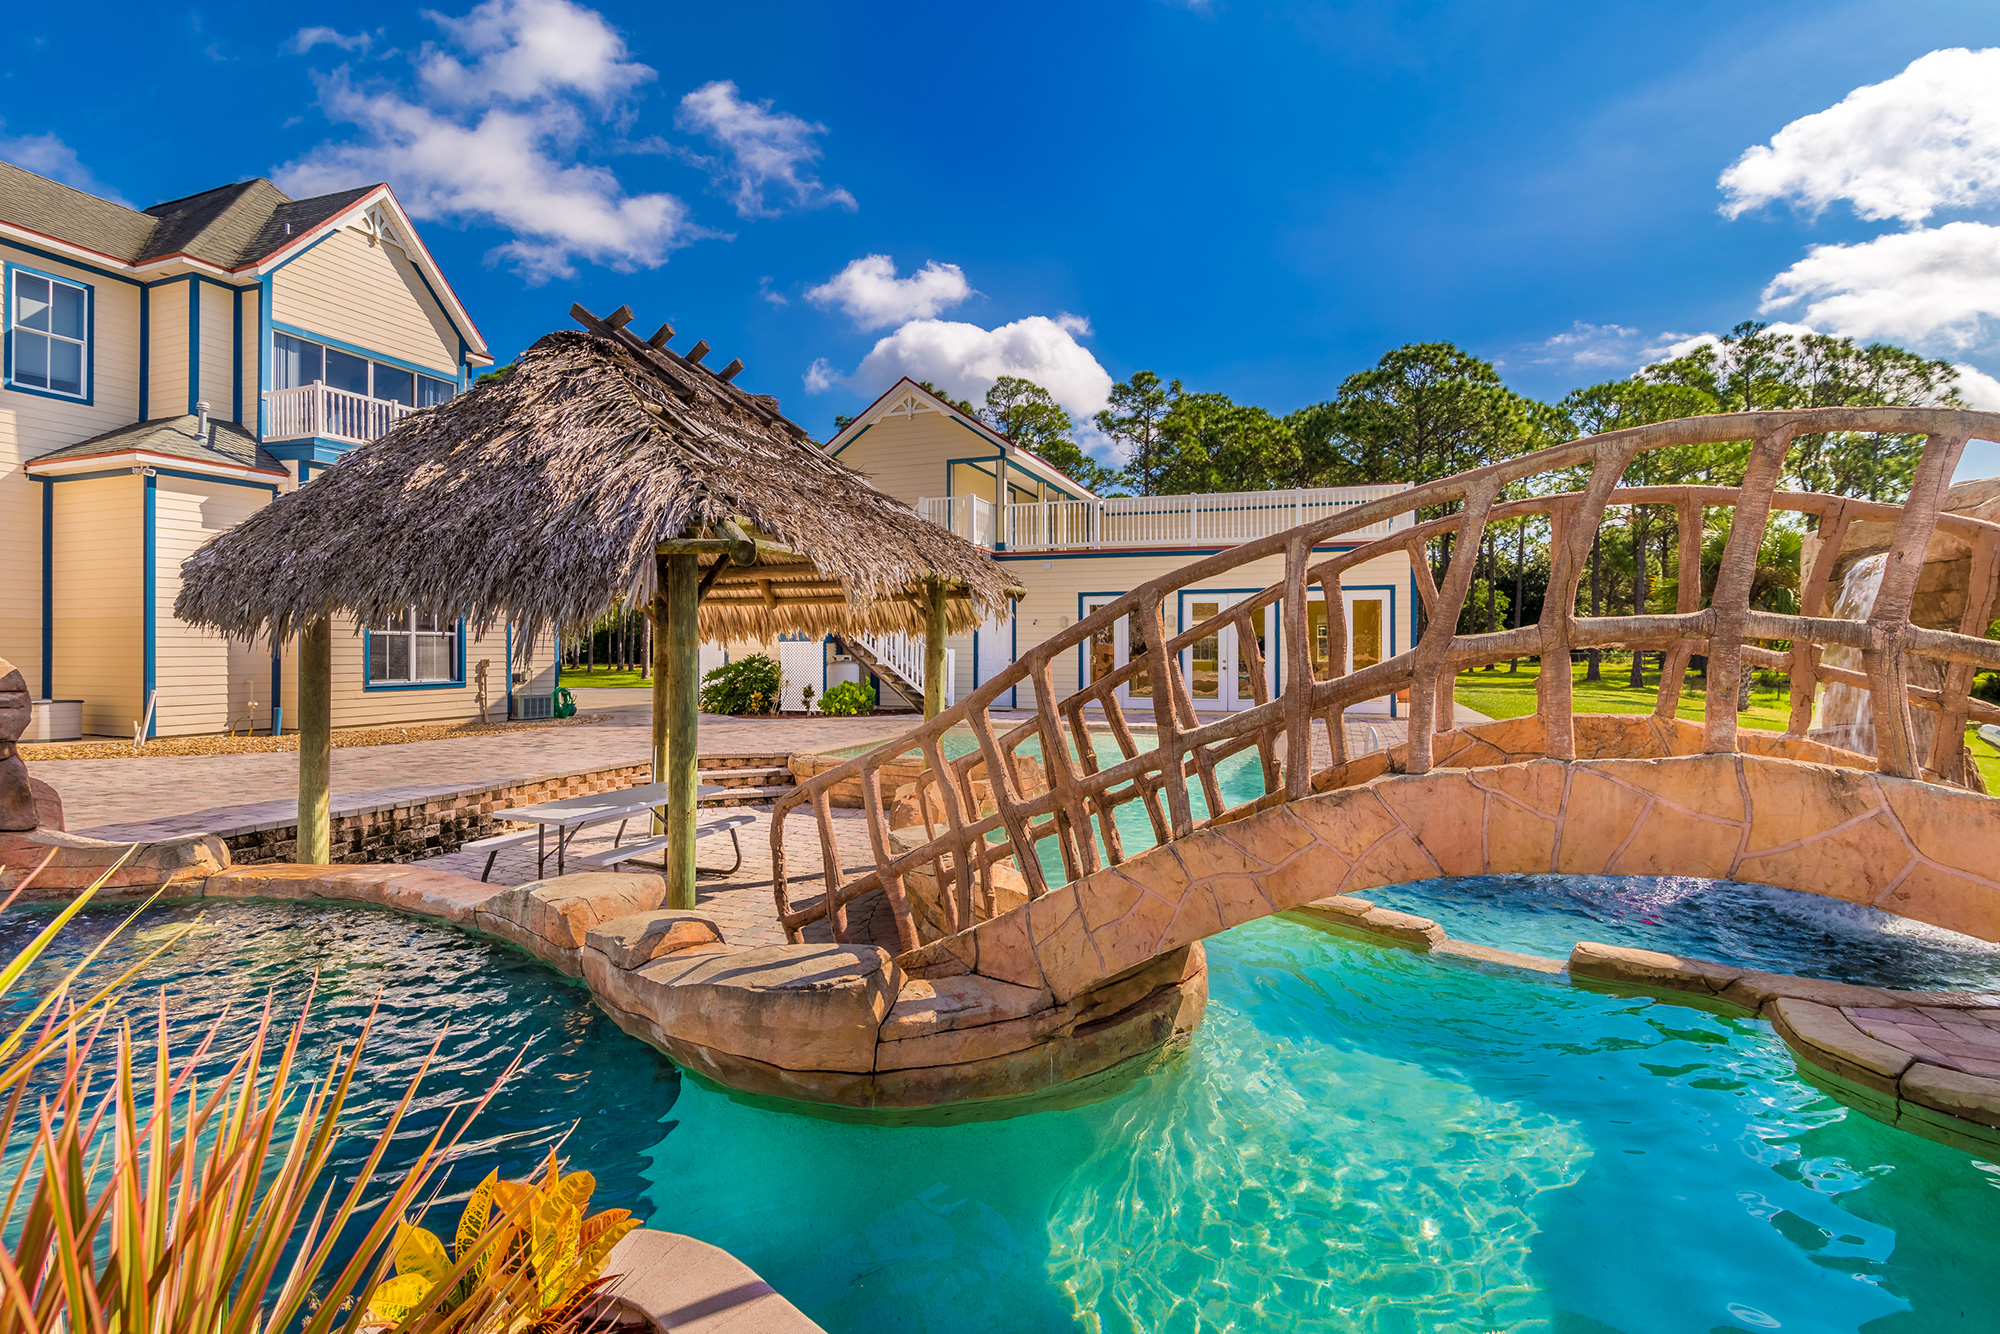 Disney Lovers' Florida House with Two Mickey Mouse–Shaped Pools Hits the Market for $850K disney-house-pool-tiki-hut